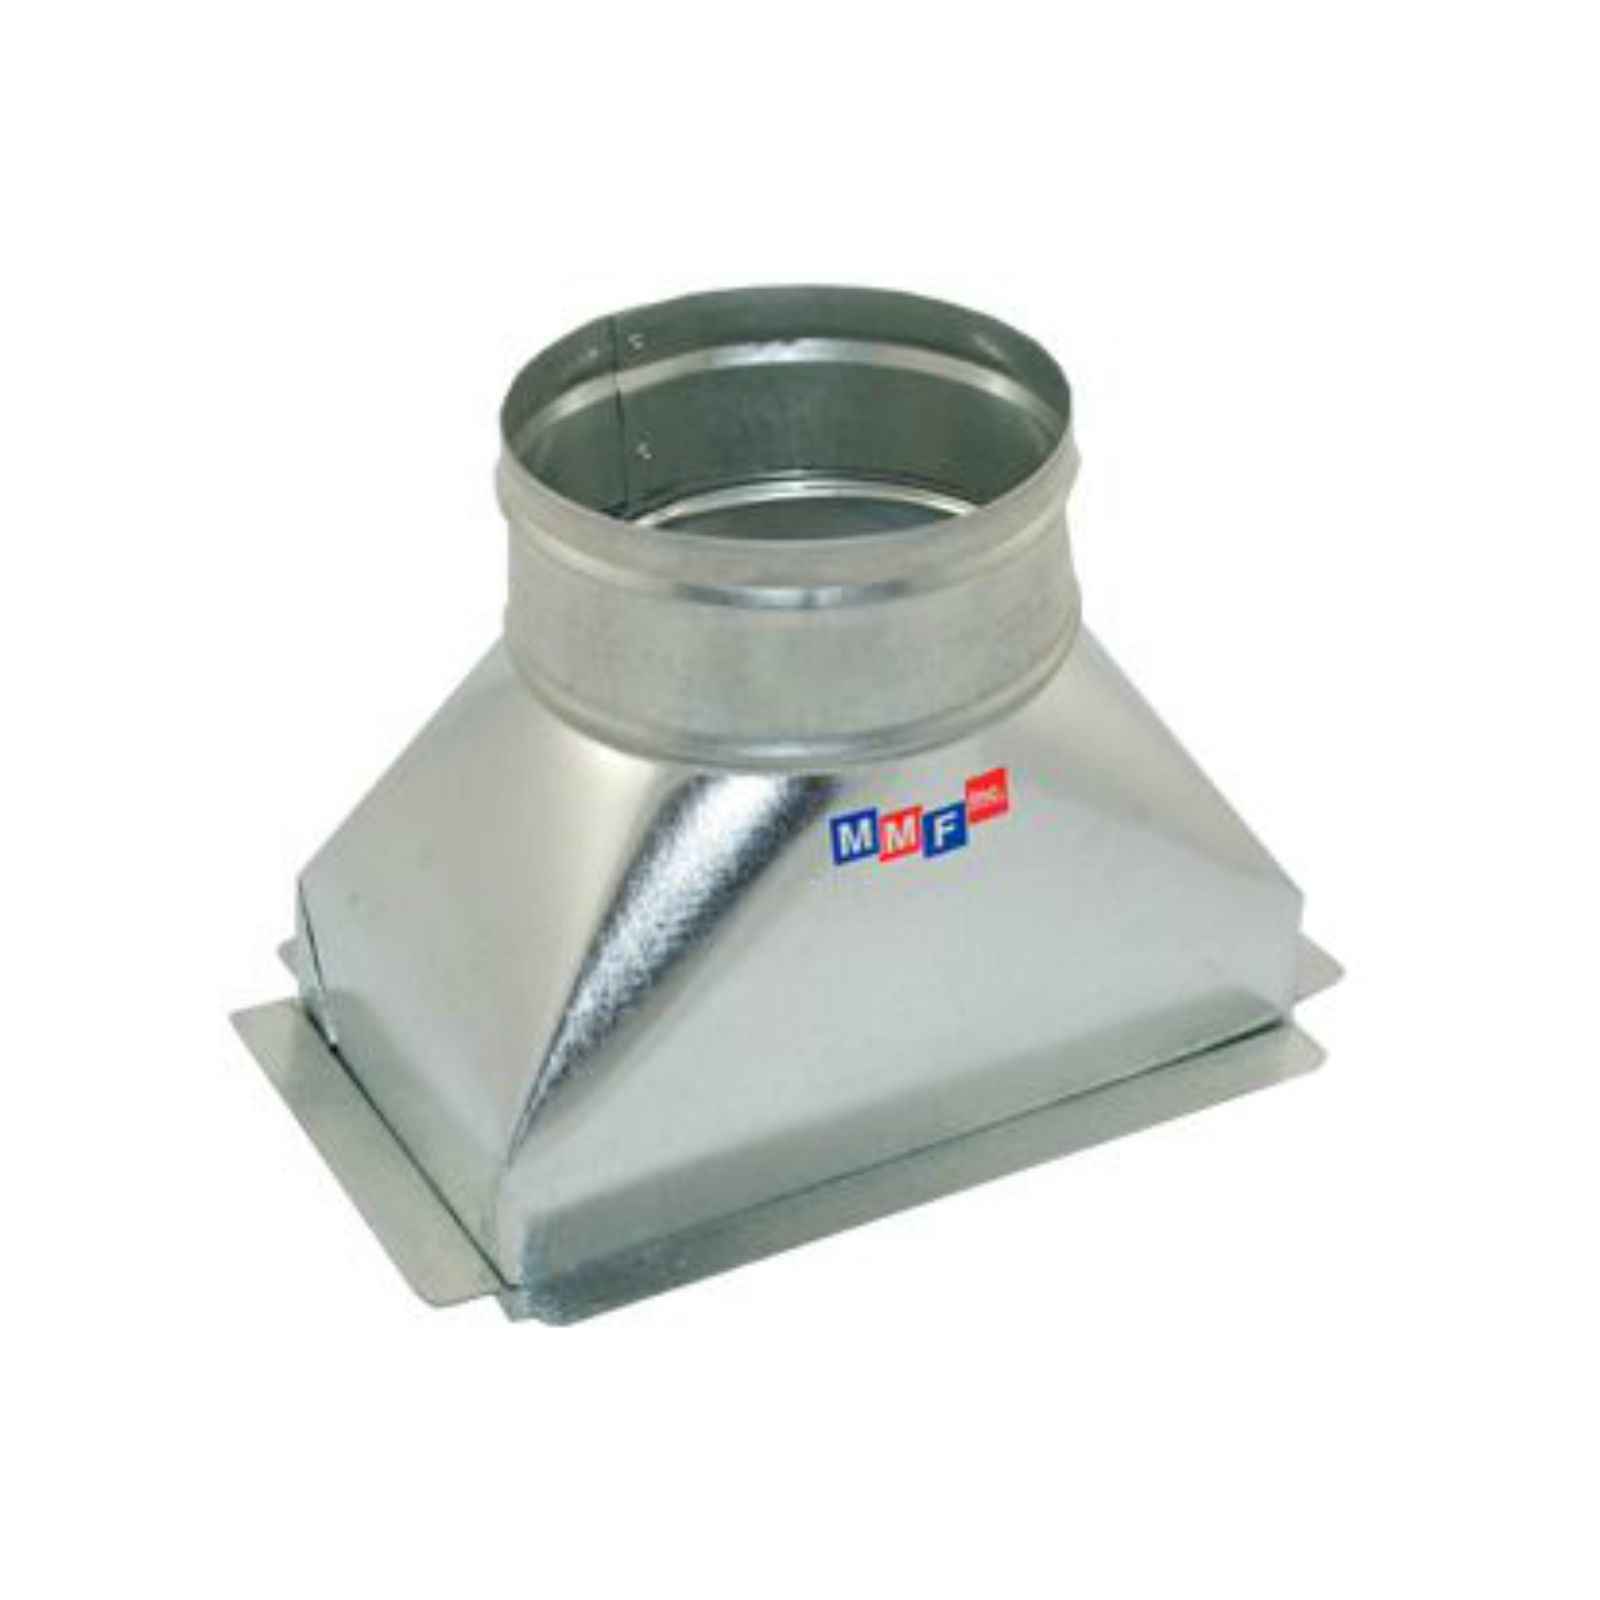 "Modular Metal BTSFI140809P - Sealed Floor Box - 26 Gauge - With Plaster Ground Flange 14"" X 08"" To 09"" Round"